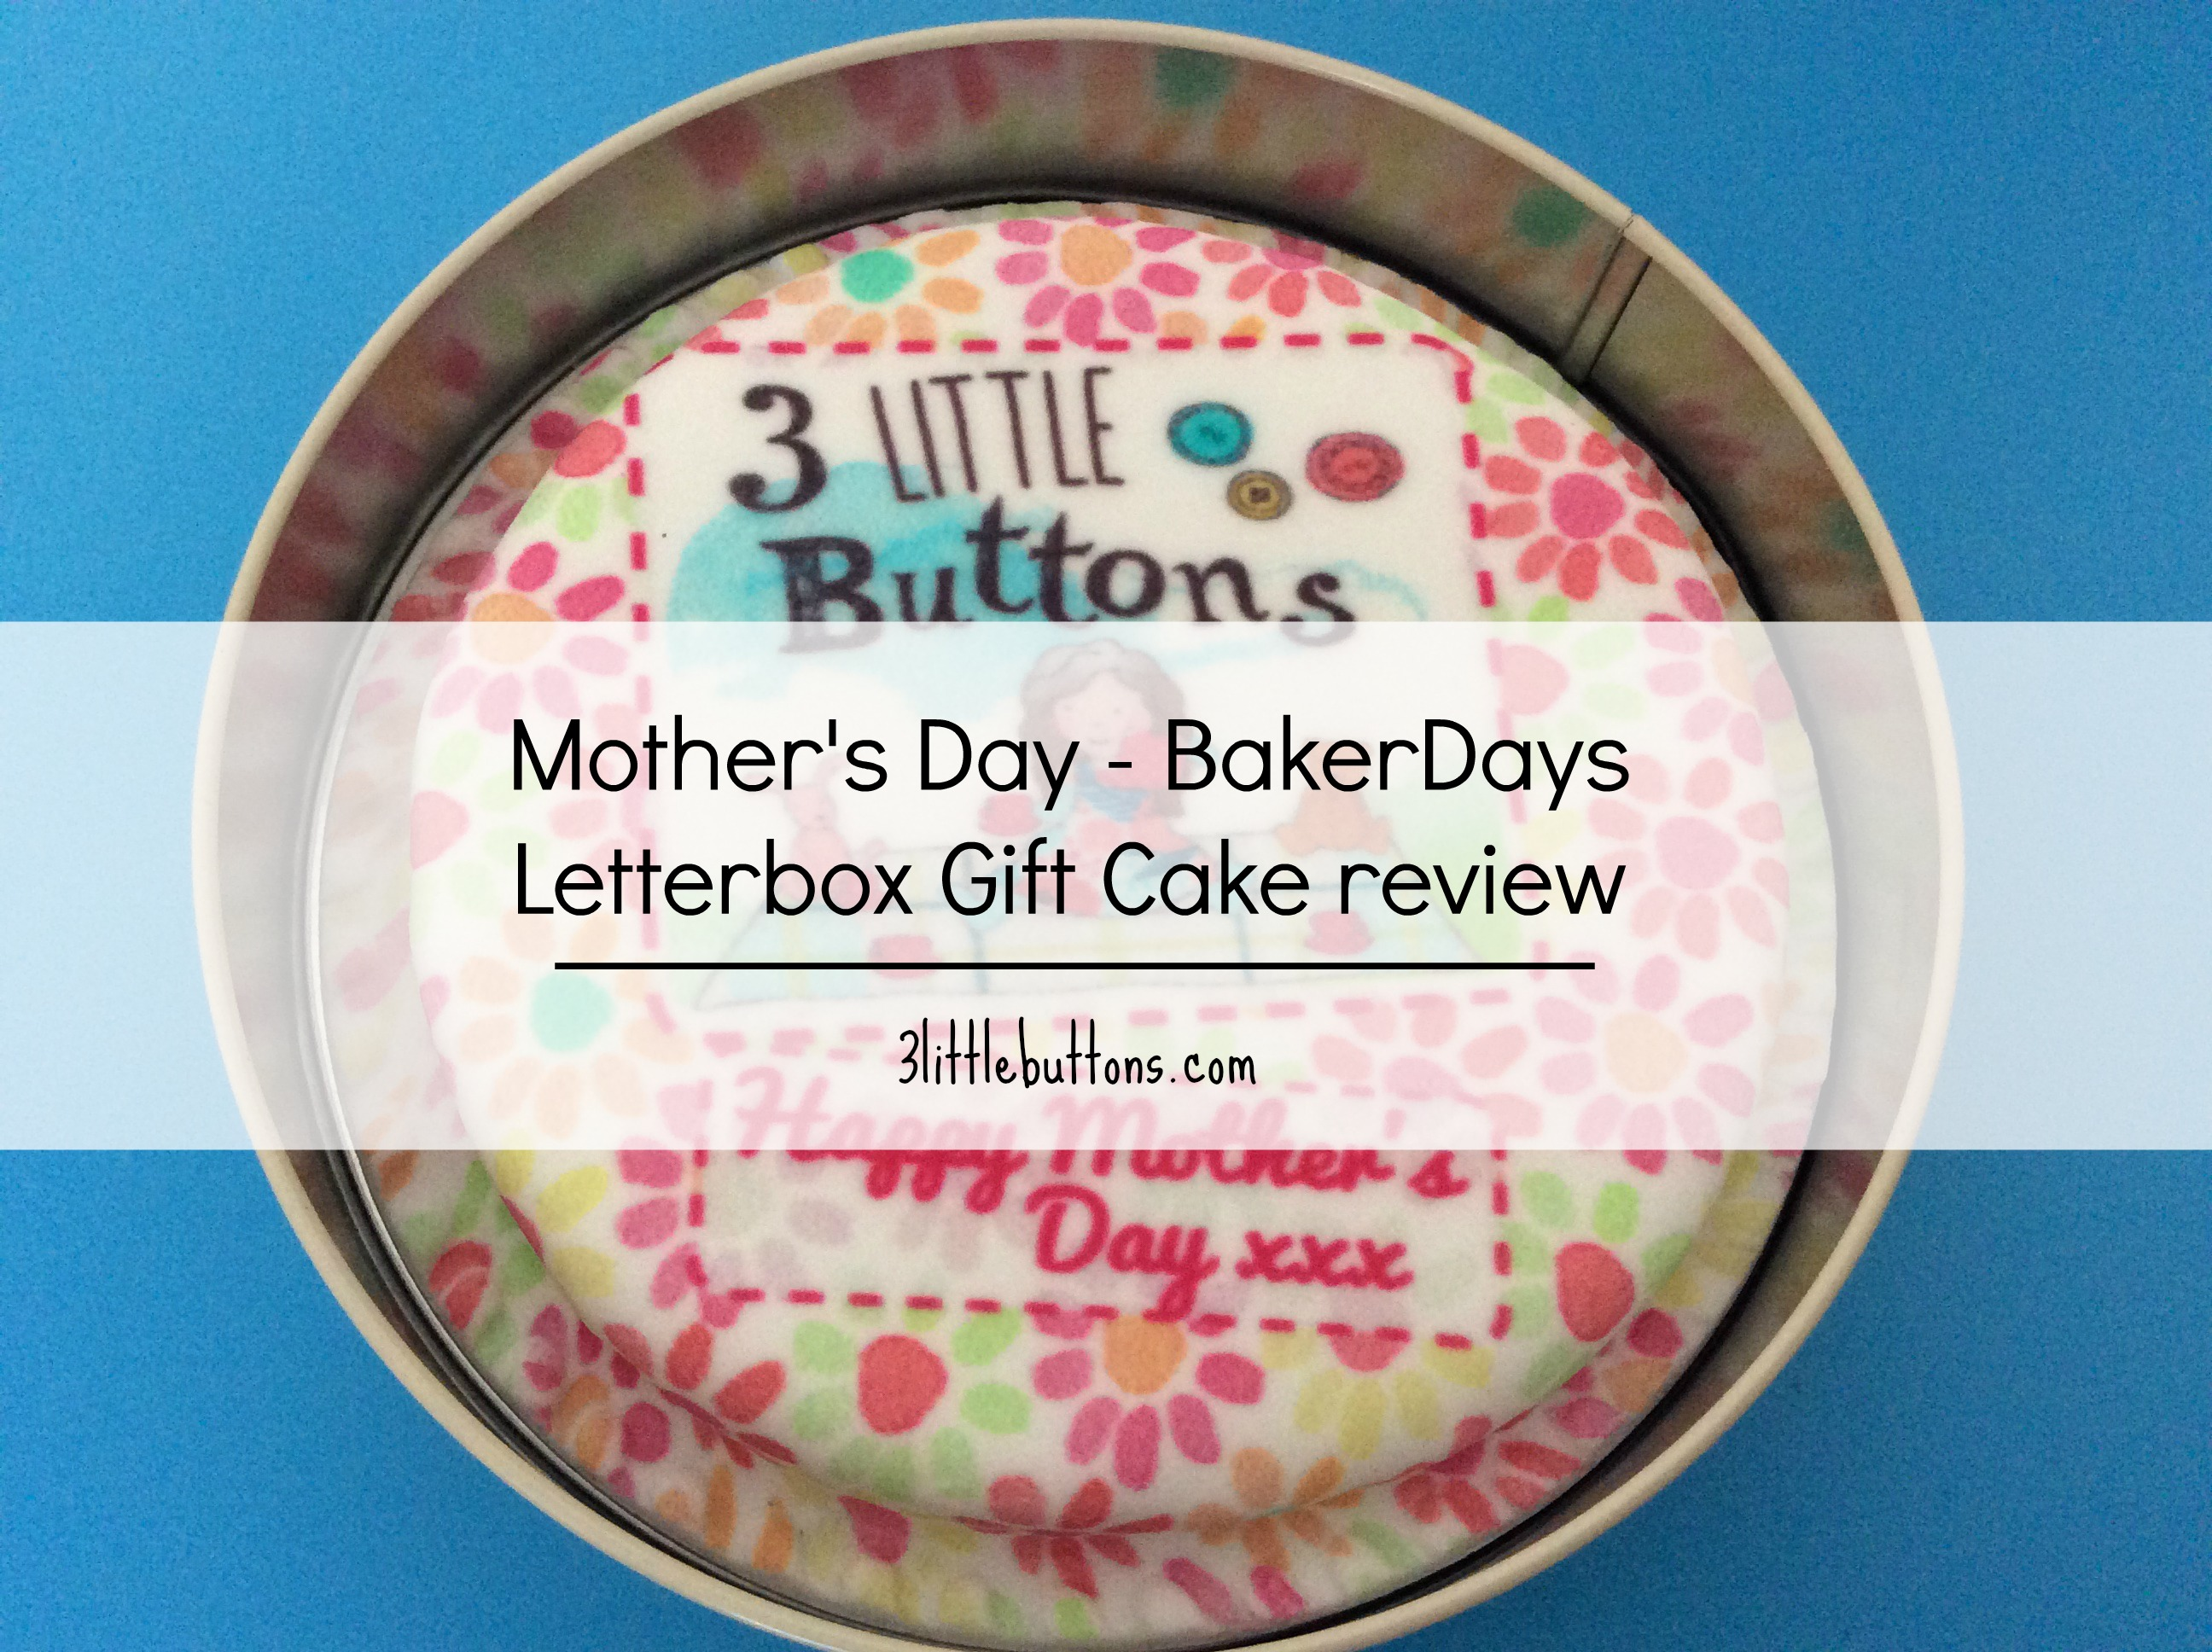 BakerDays letterbox cake review - 3 little buttons blog